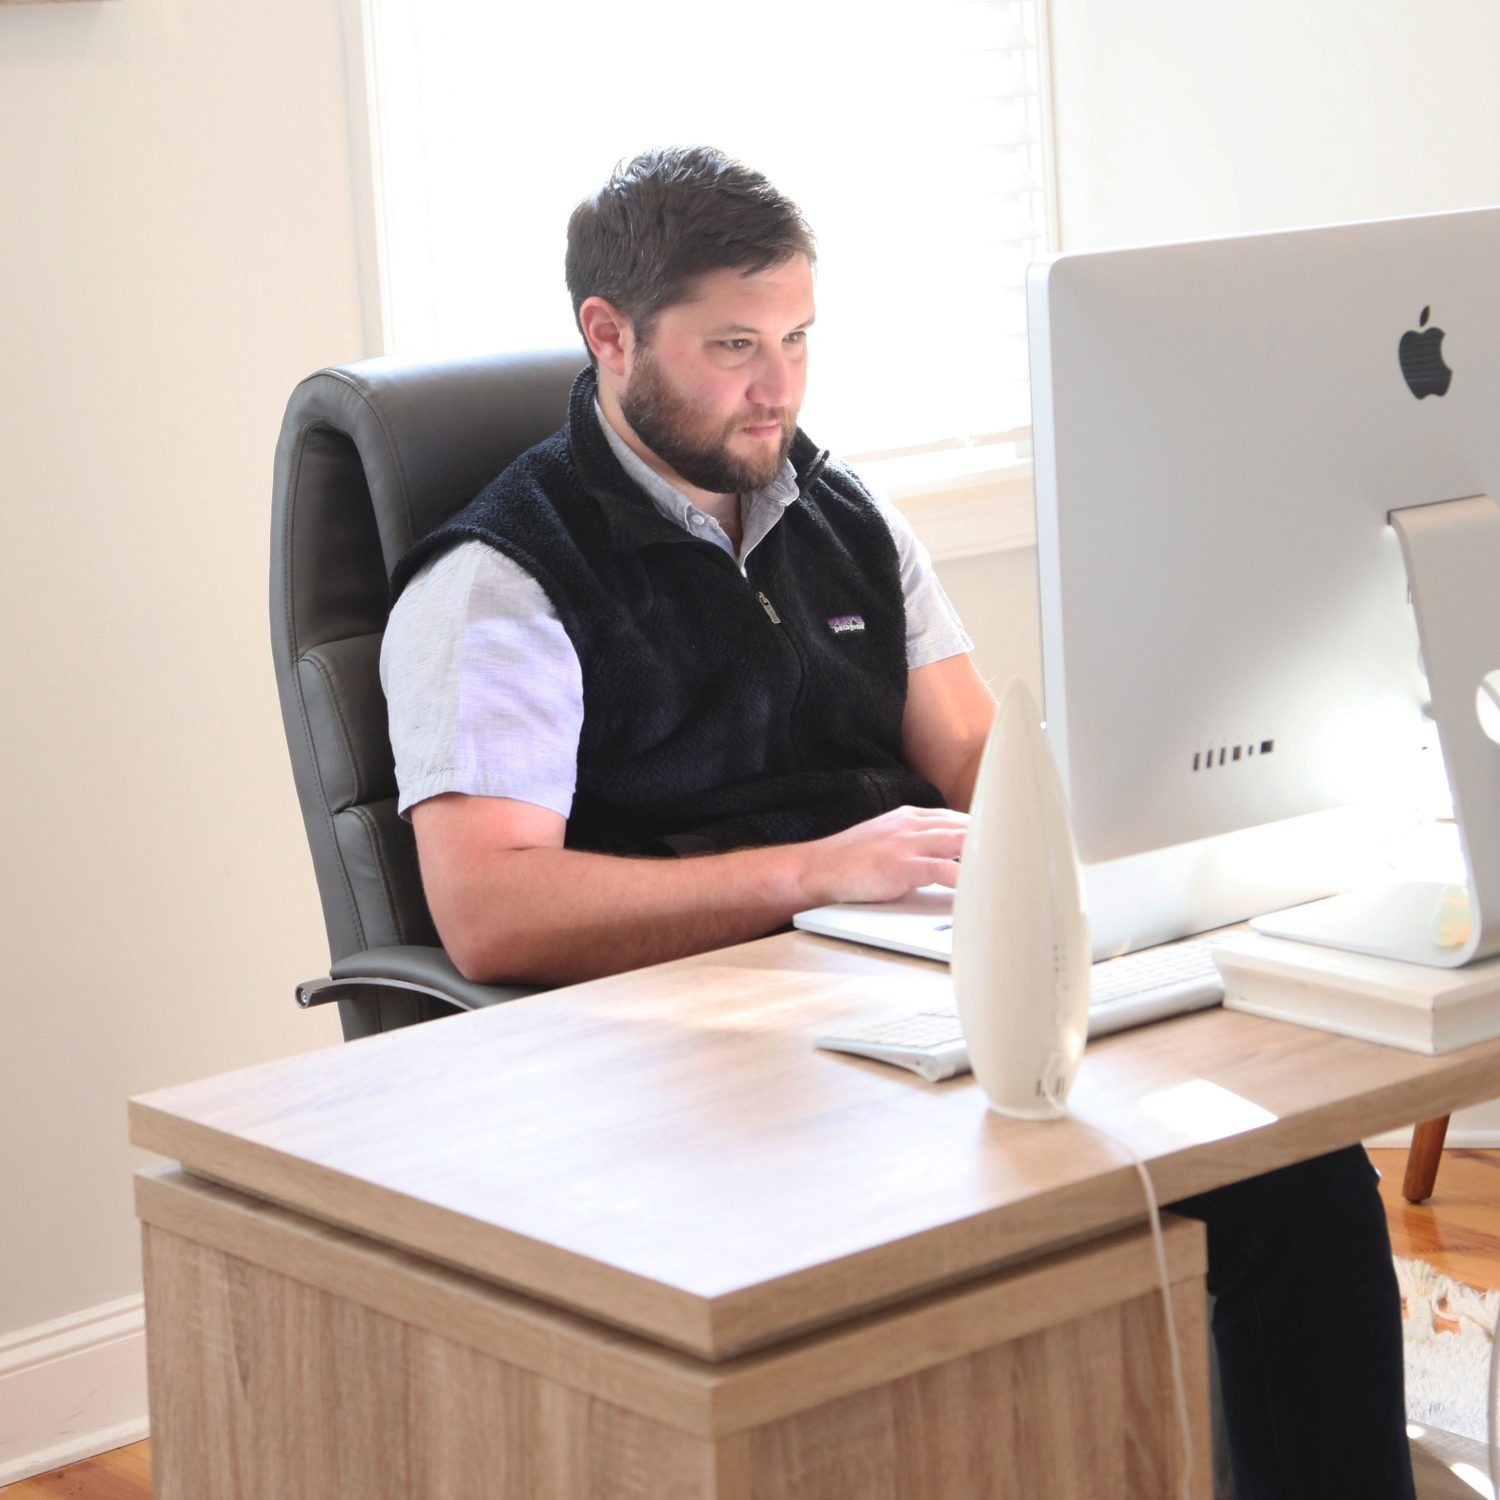 Chris Simon, the Accounting Manager working at his computer